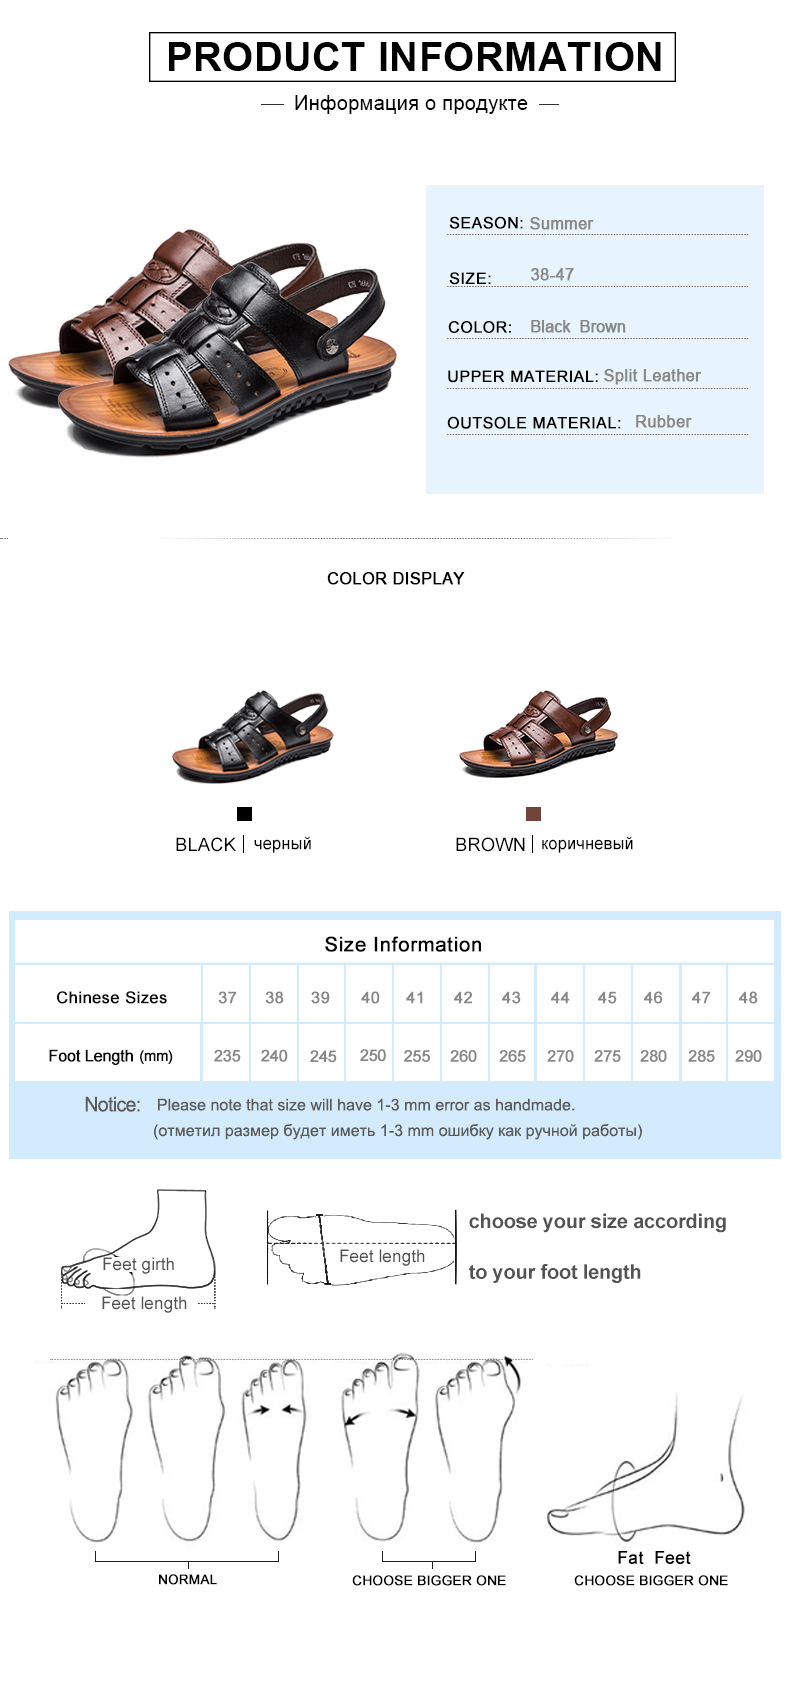 HTB1hm.YXmBYBeNjy0Feq6znmFXaS - Xammep Men Sandals Genuine Split Leather Men Beach Shoes Brand Men Casual Shoes Men Slippers Sneakers Summer Shoes Flip Flops